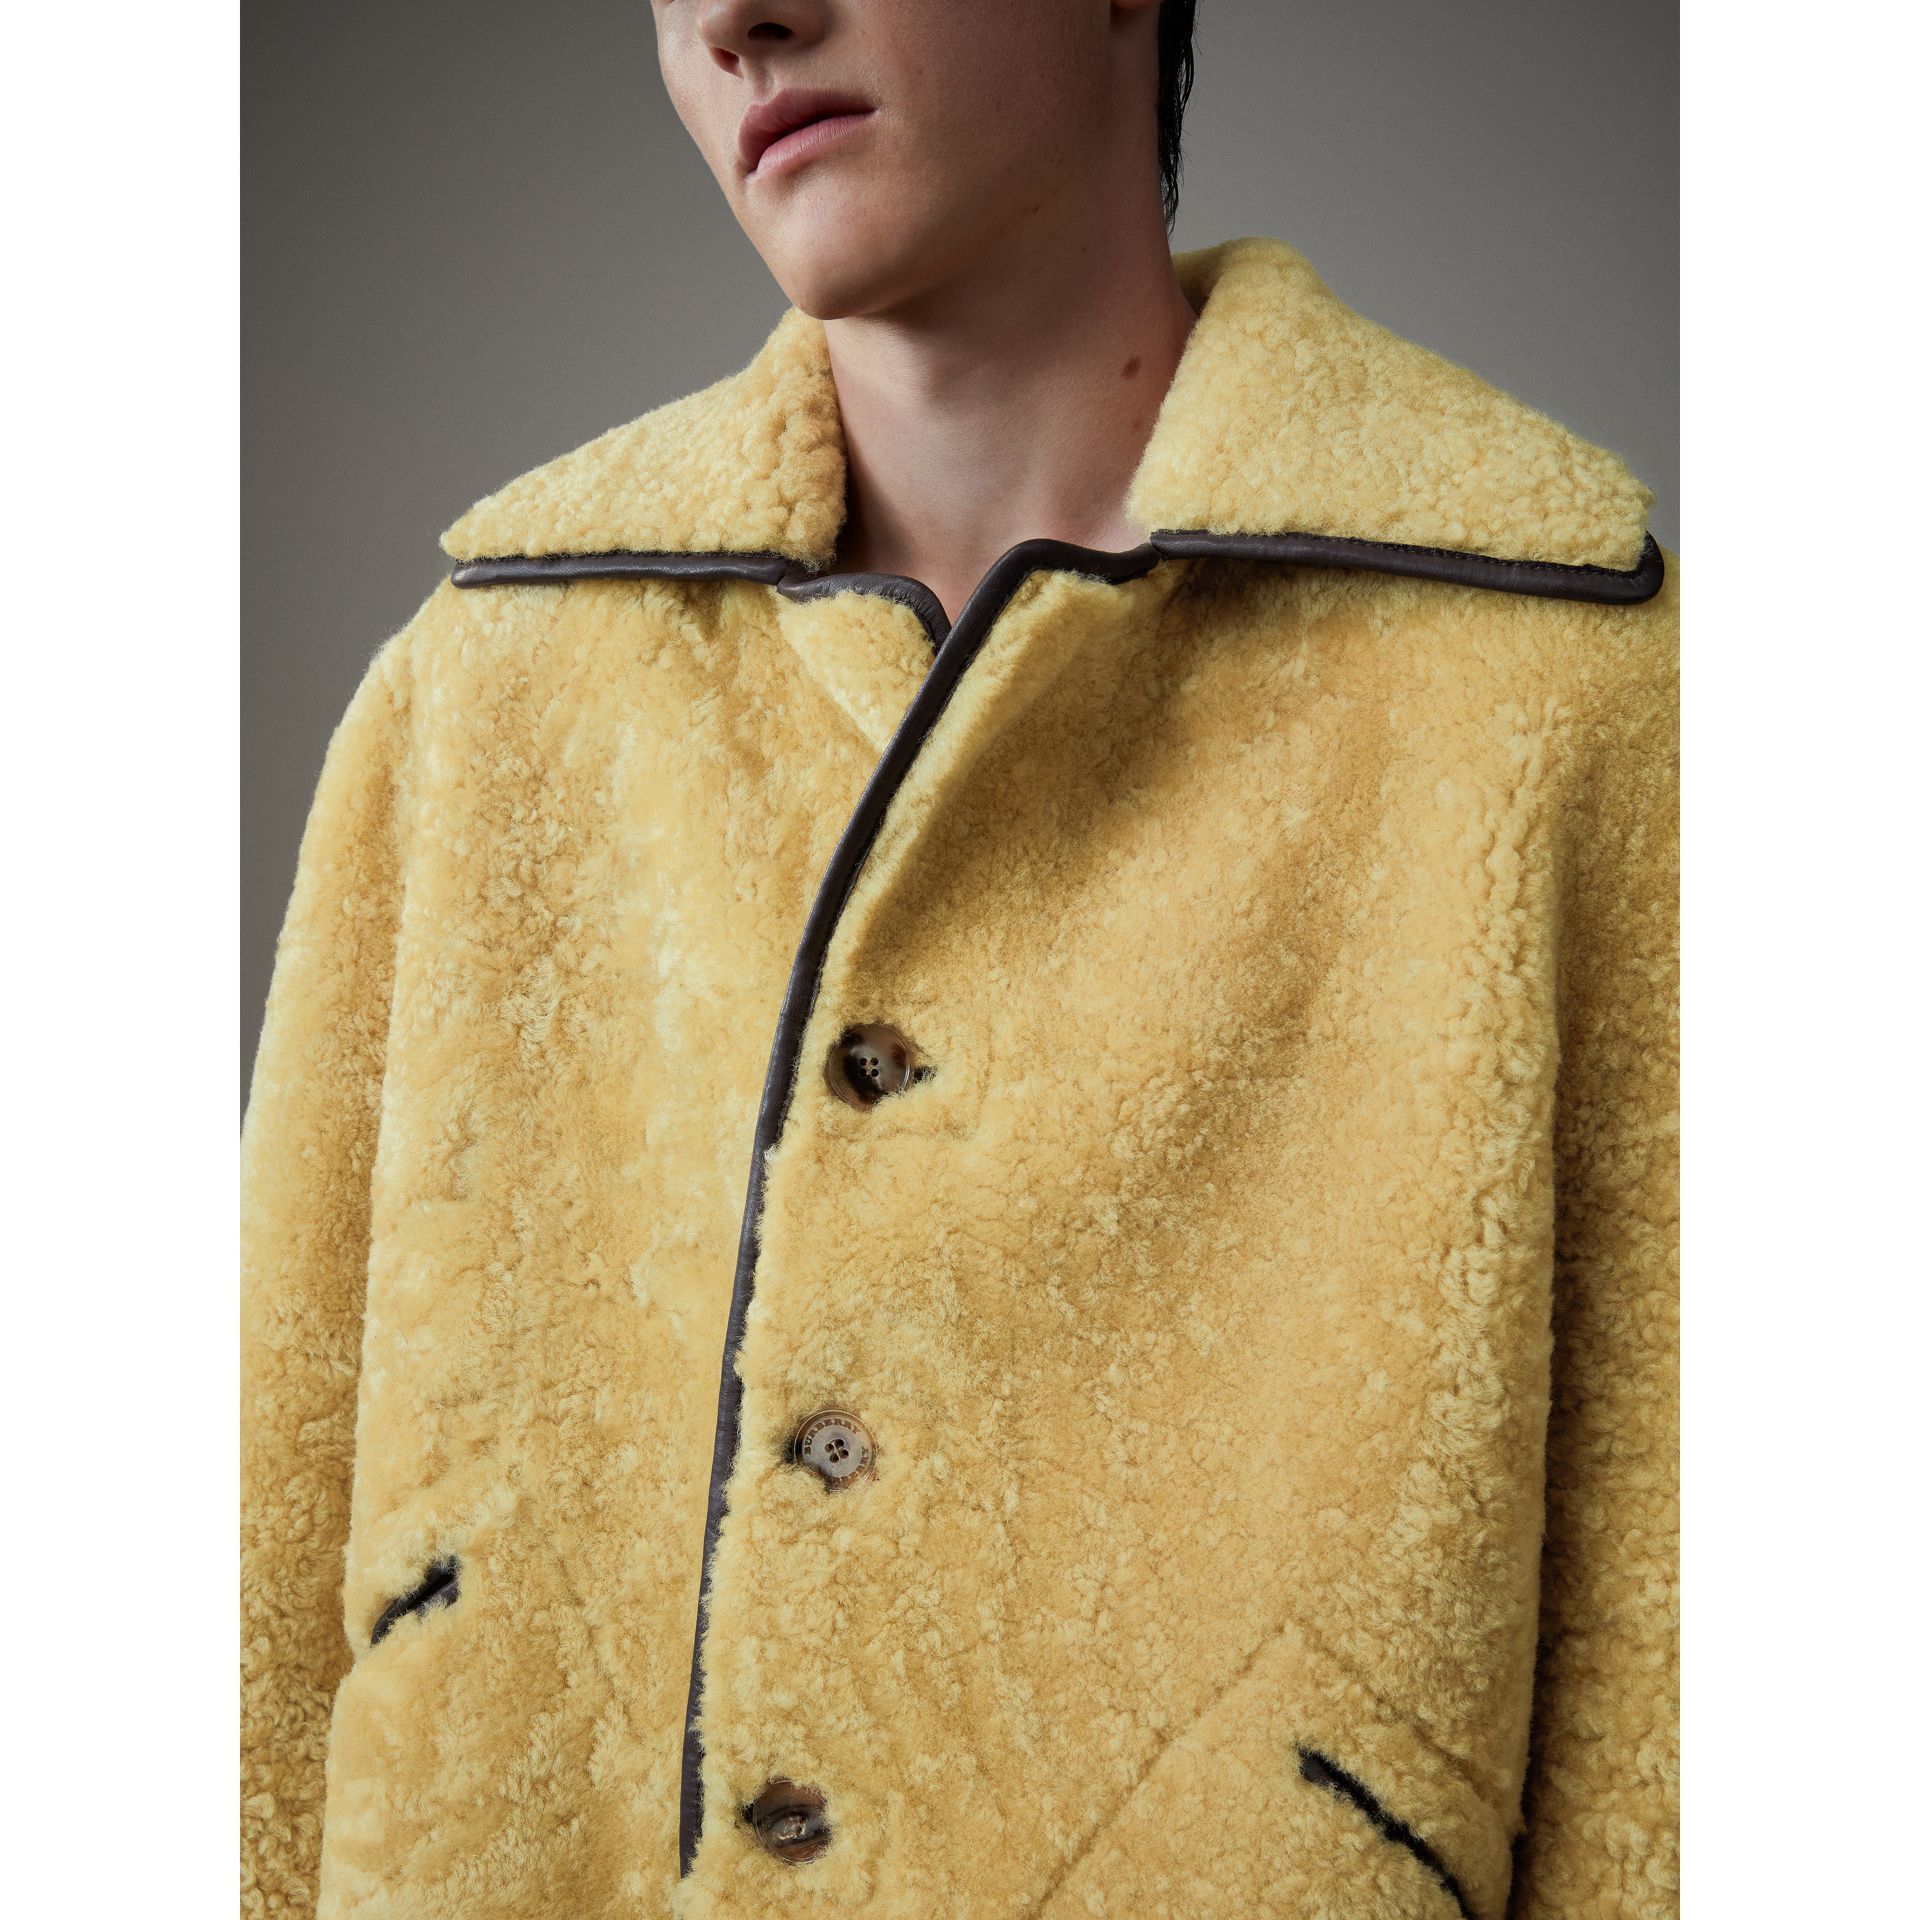 Relaxed Fit Shearling and Lambskin Jacket in Chocolate/light Citrus - Men | Burberry - gallery image 1